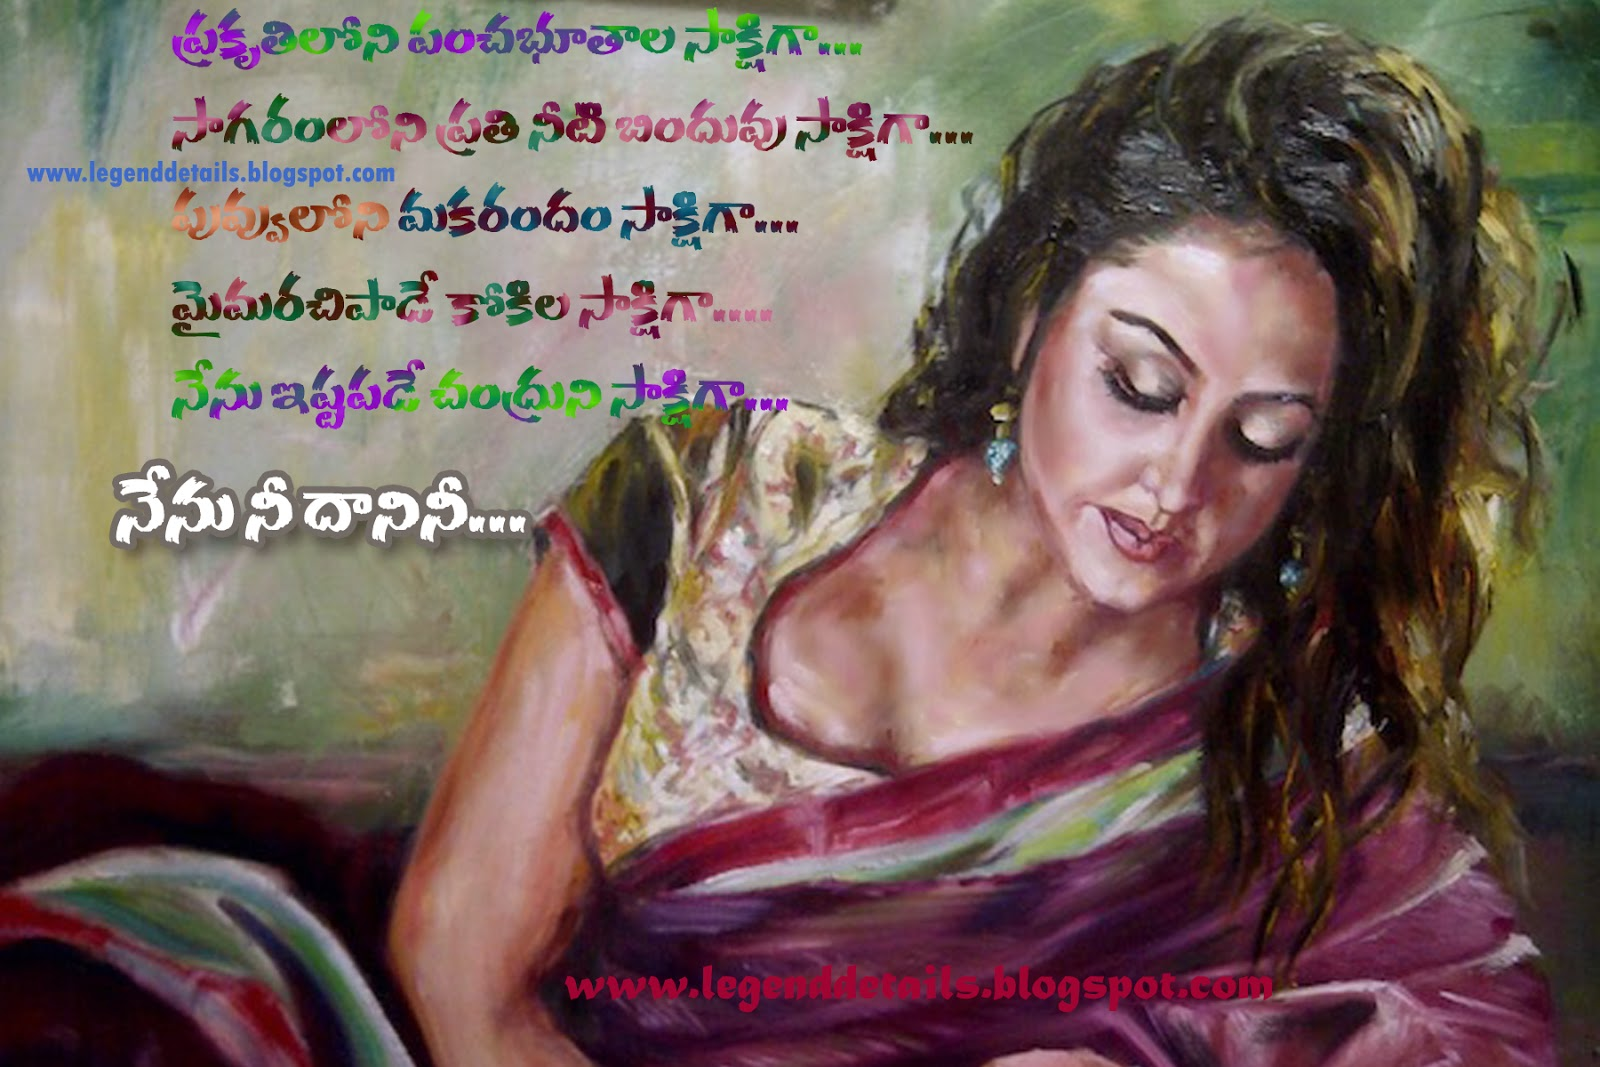 Deep Love Poems For Him In Telugu Hd Wall Papers Legendary Quotes